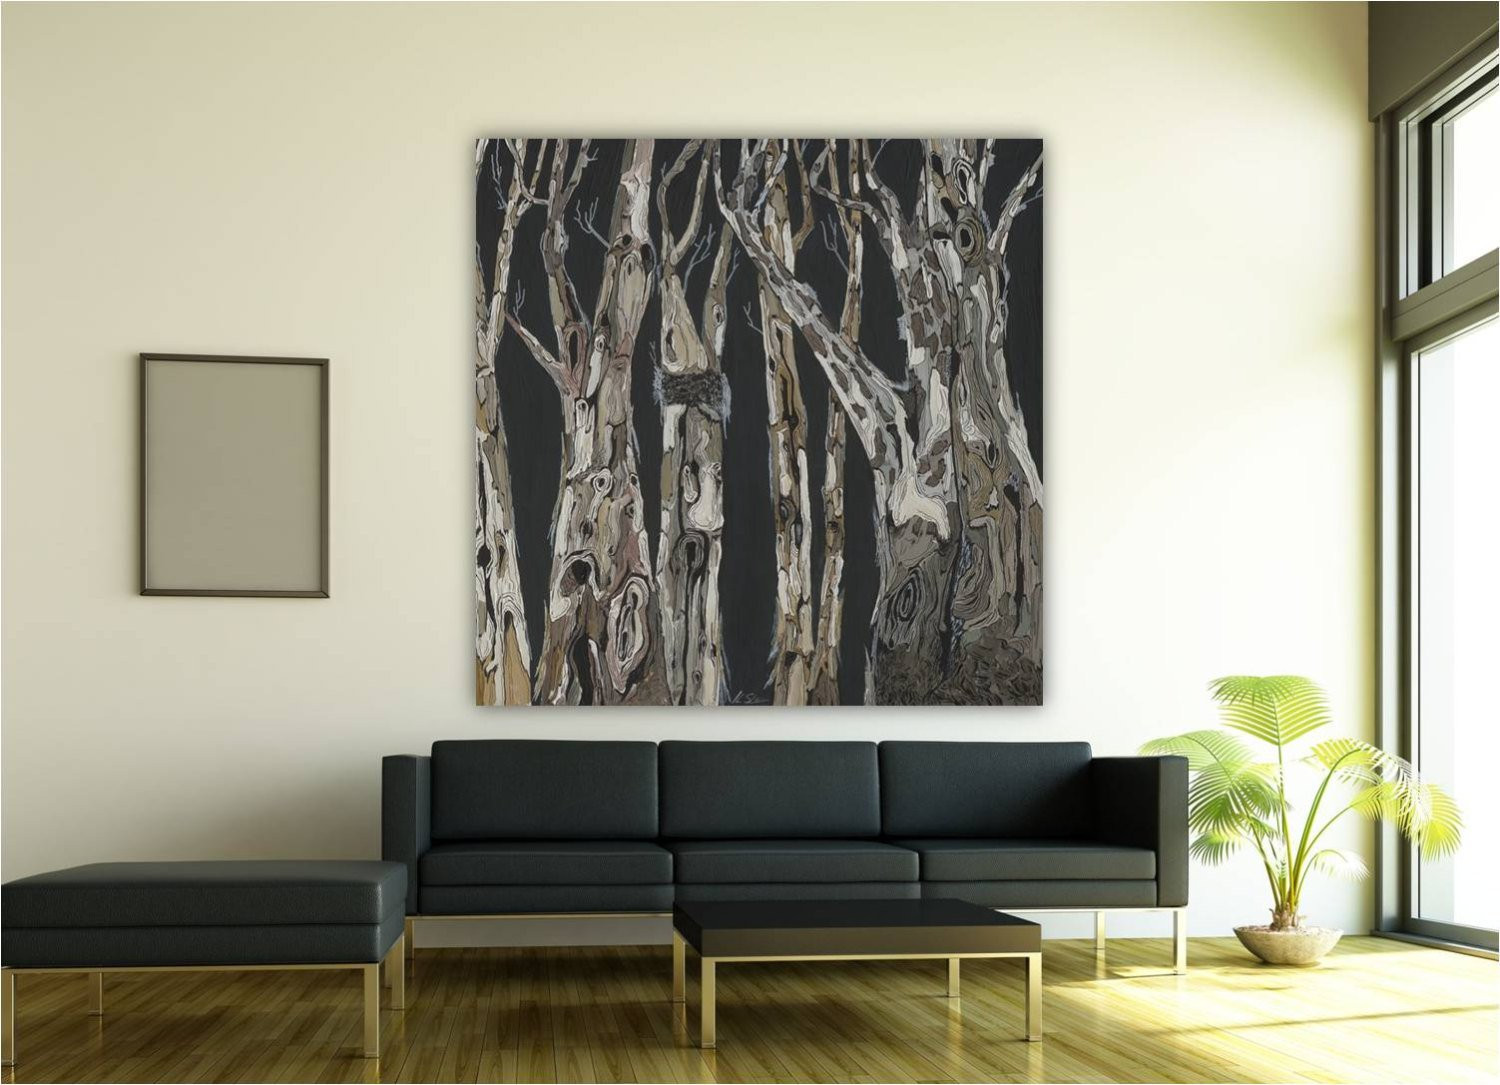 Best ideas about Extra Large Wall Art . Save or Pin Wall Art extra large modern artwork dining room tree art black Now.